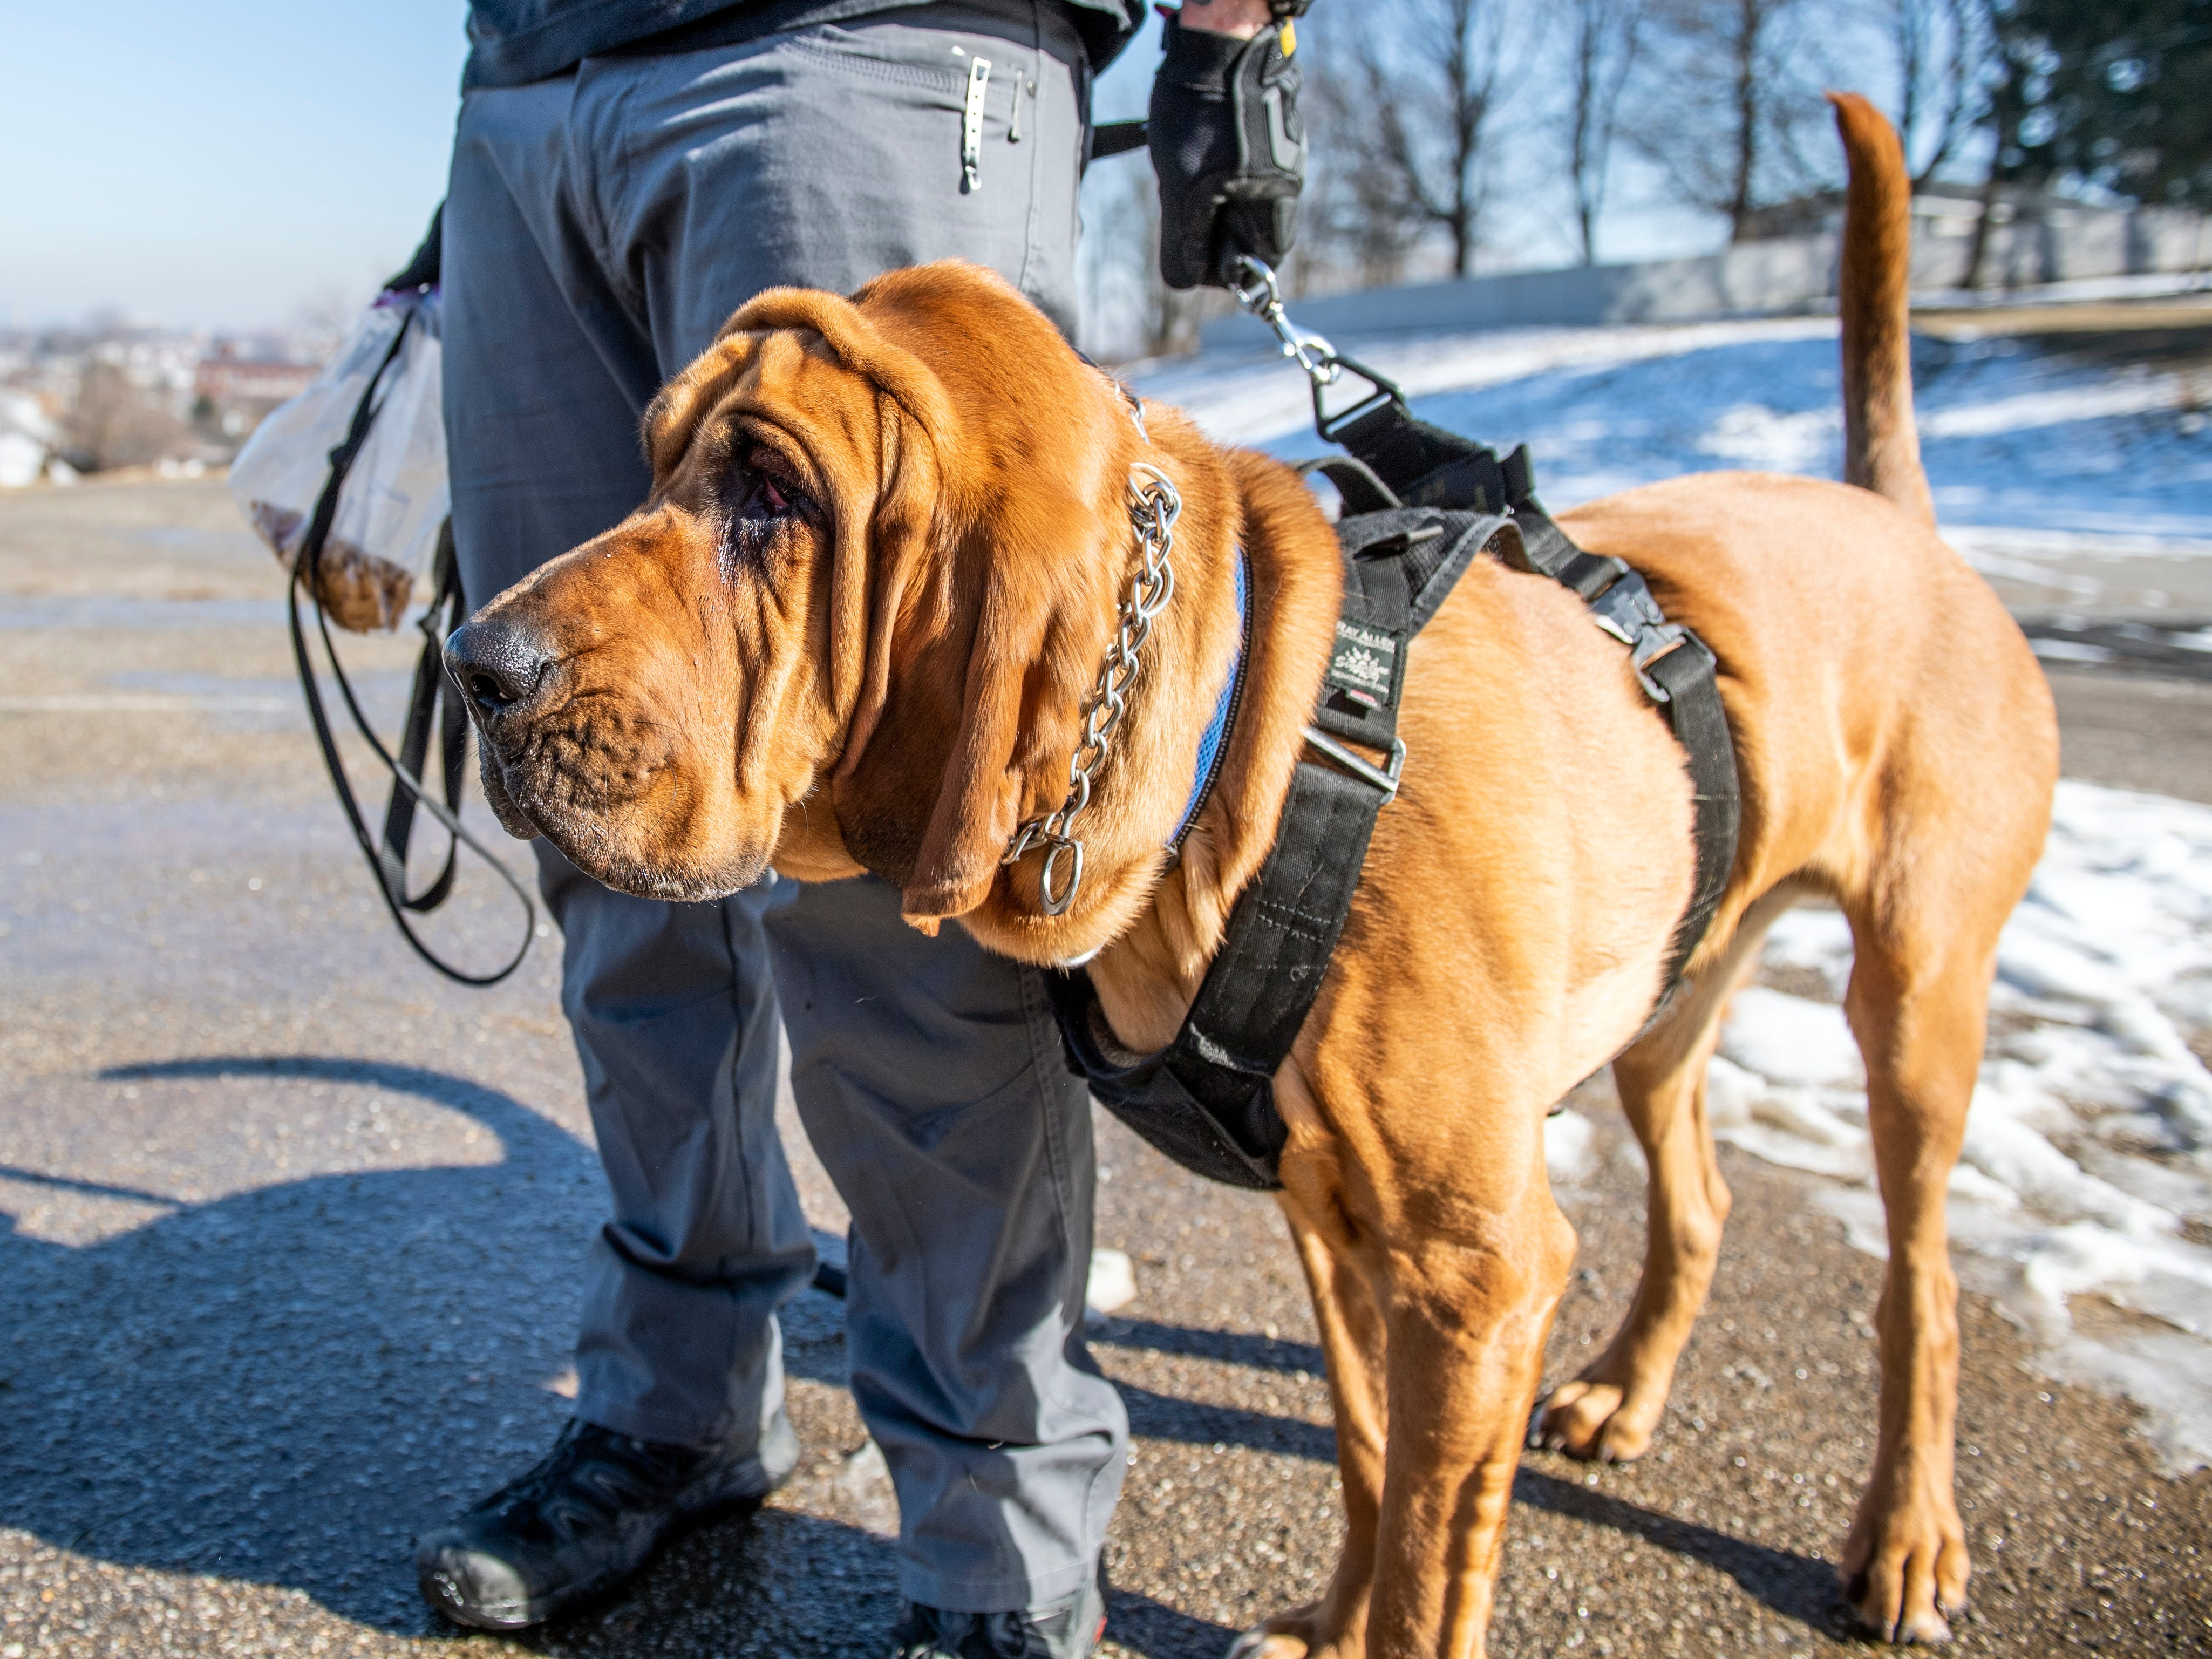 While bloodhounds usually appear dopey, Detective Prince is ready to work and gets excited when he gets a new scent, contrasting his look while on standby, here, Monday, Feb. 4, 2019. West York Borough's Detective Prince - who just turned 2-years old - has helped county law enforcement in 30 cases over the past year.